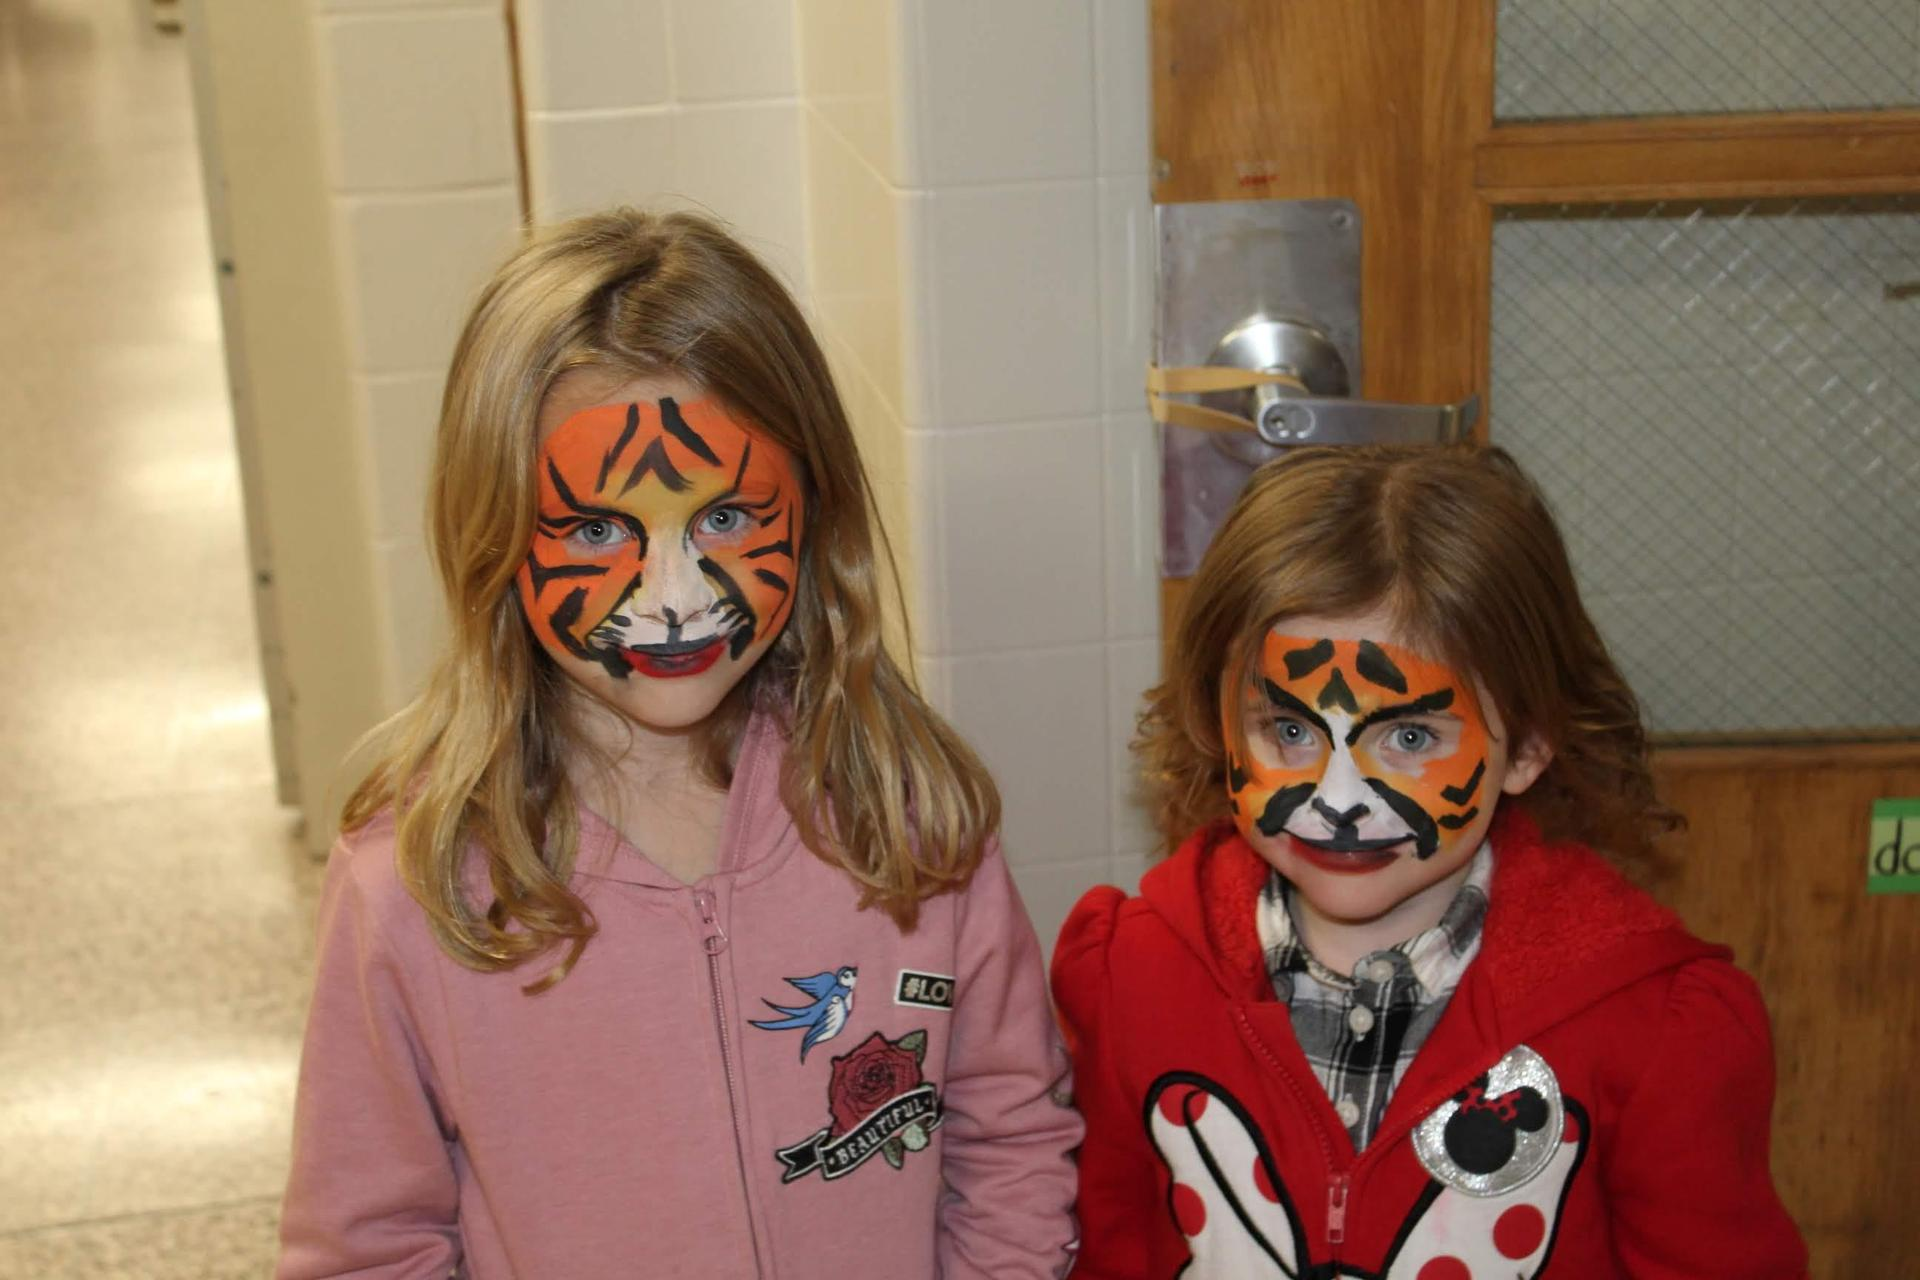 Sisters showing their face painting masterpieces.